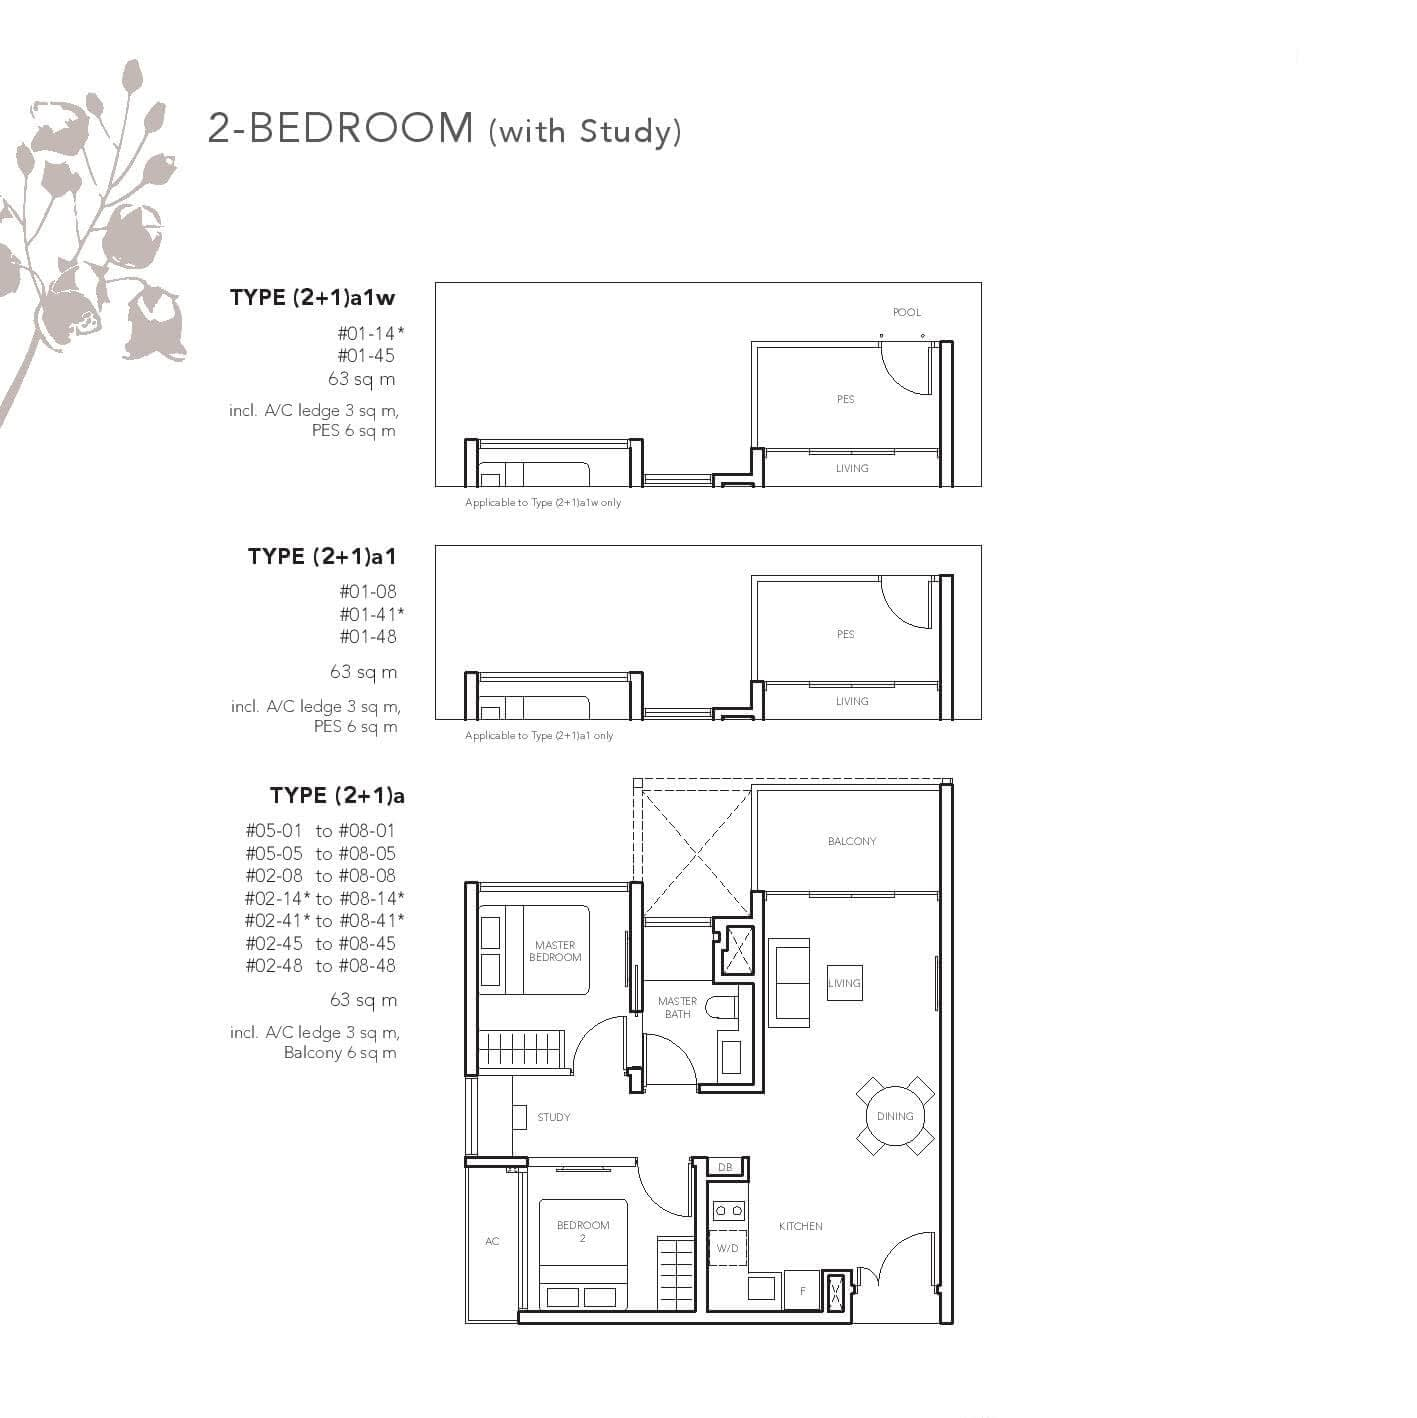 2 Bedrooms (with Study room)